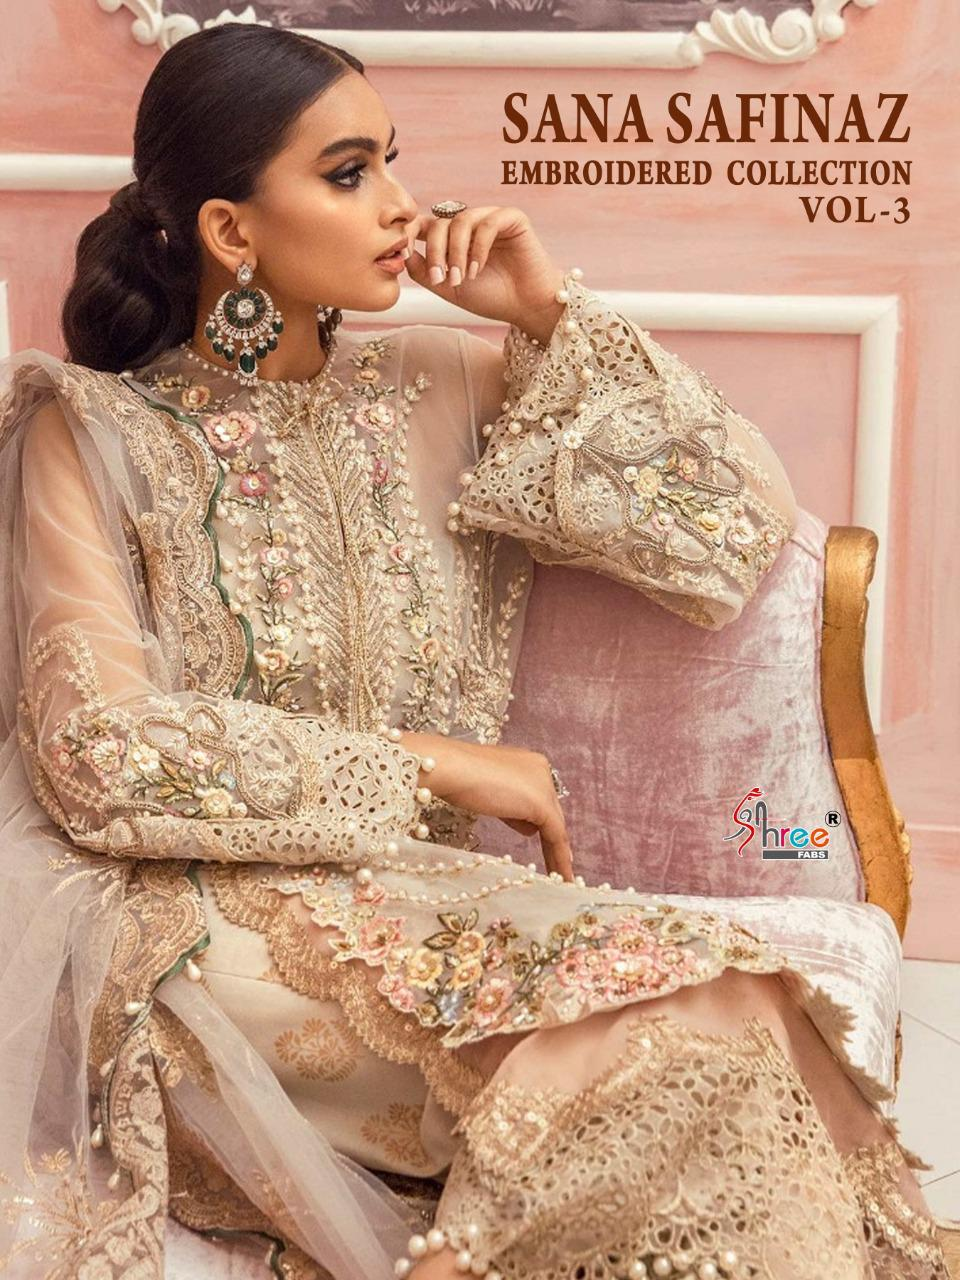 Shree Fabs Sana Safinaz Embroidered Collection Vol 3 Salwar Suit Wholesale Catalog 4 Pcs 1 - Shree Fabs Sana Safinaz Embroidered Collection Vol 3 Salwar Suit Wholesale Catalog 4 Pcs